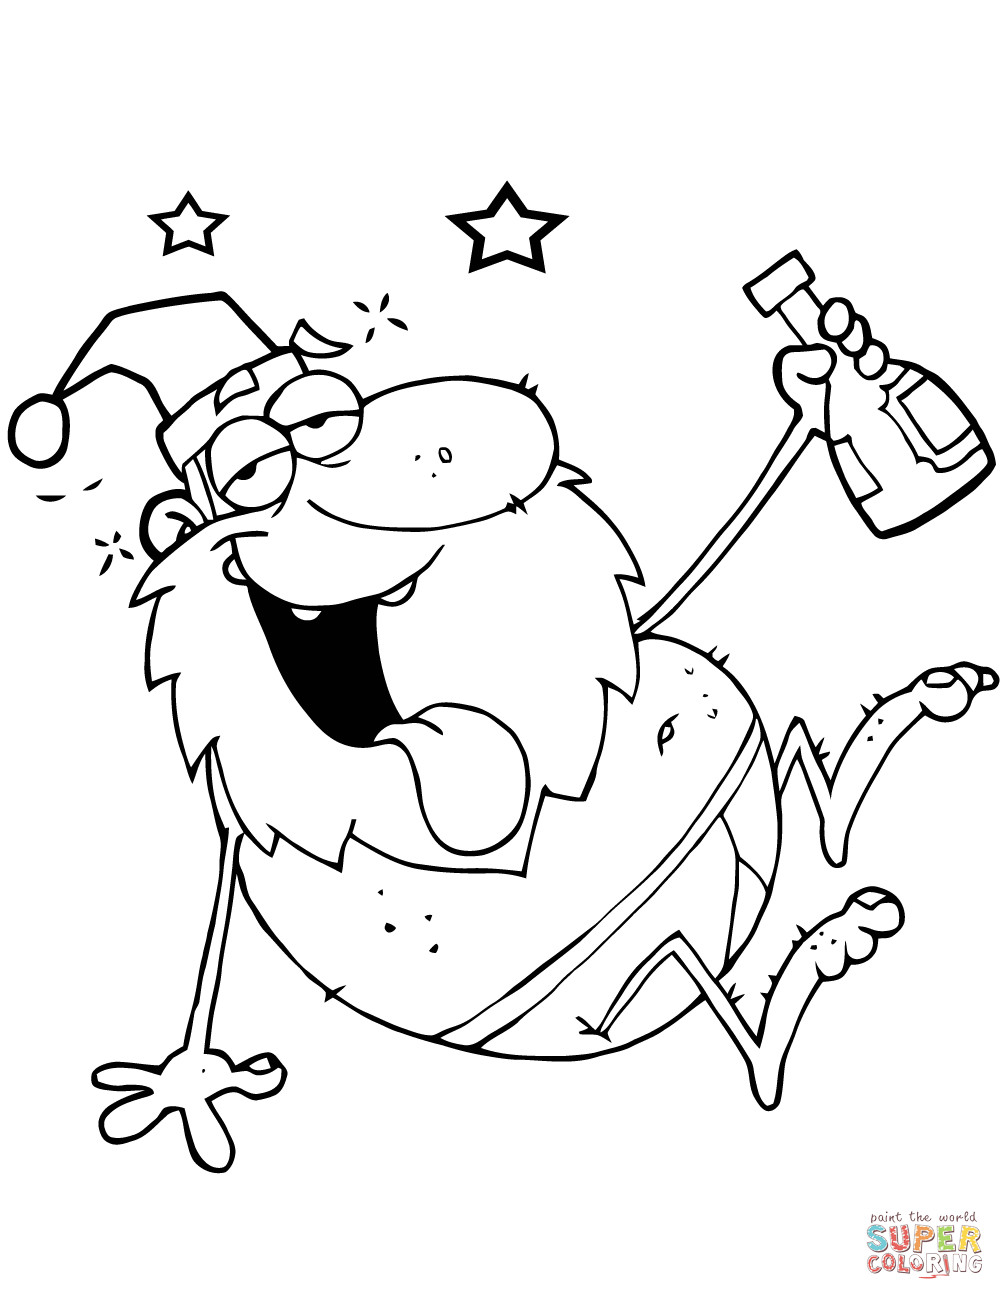 Santa Claus Coloring Pages Free With 001 Mesmerizing Page Of Clause Cjsp Me